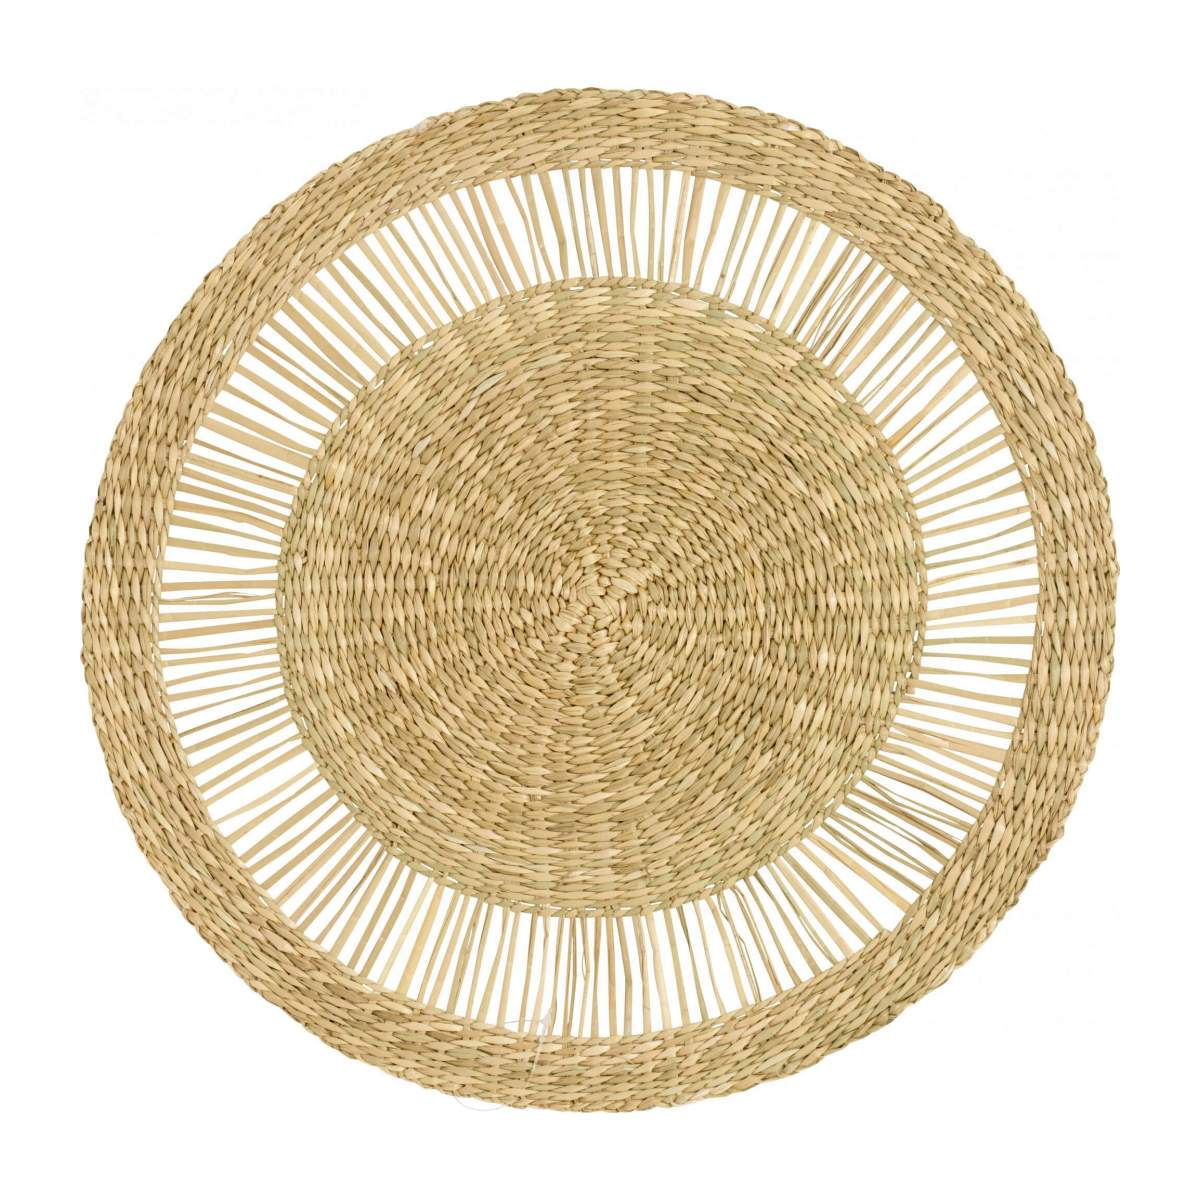 Set de table rond en jonc de mer - Naturel - 40 cm n°1